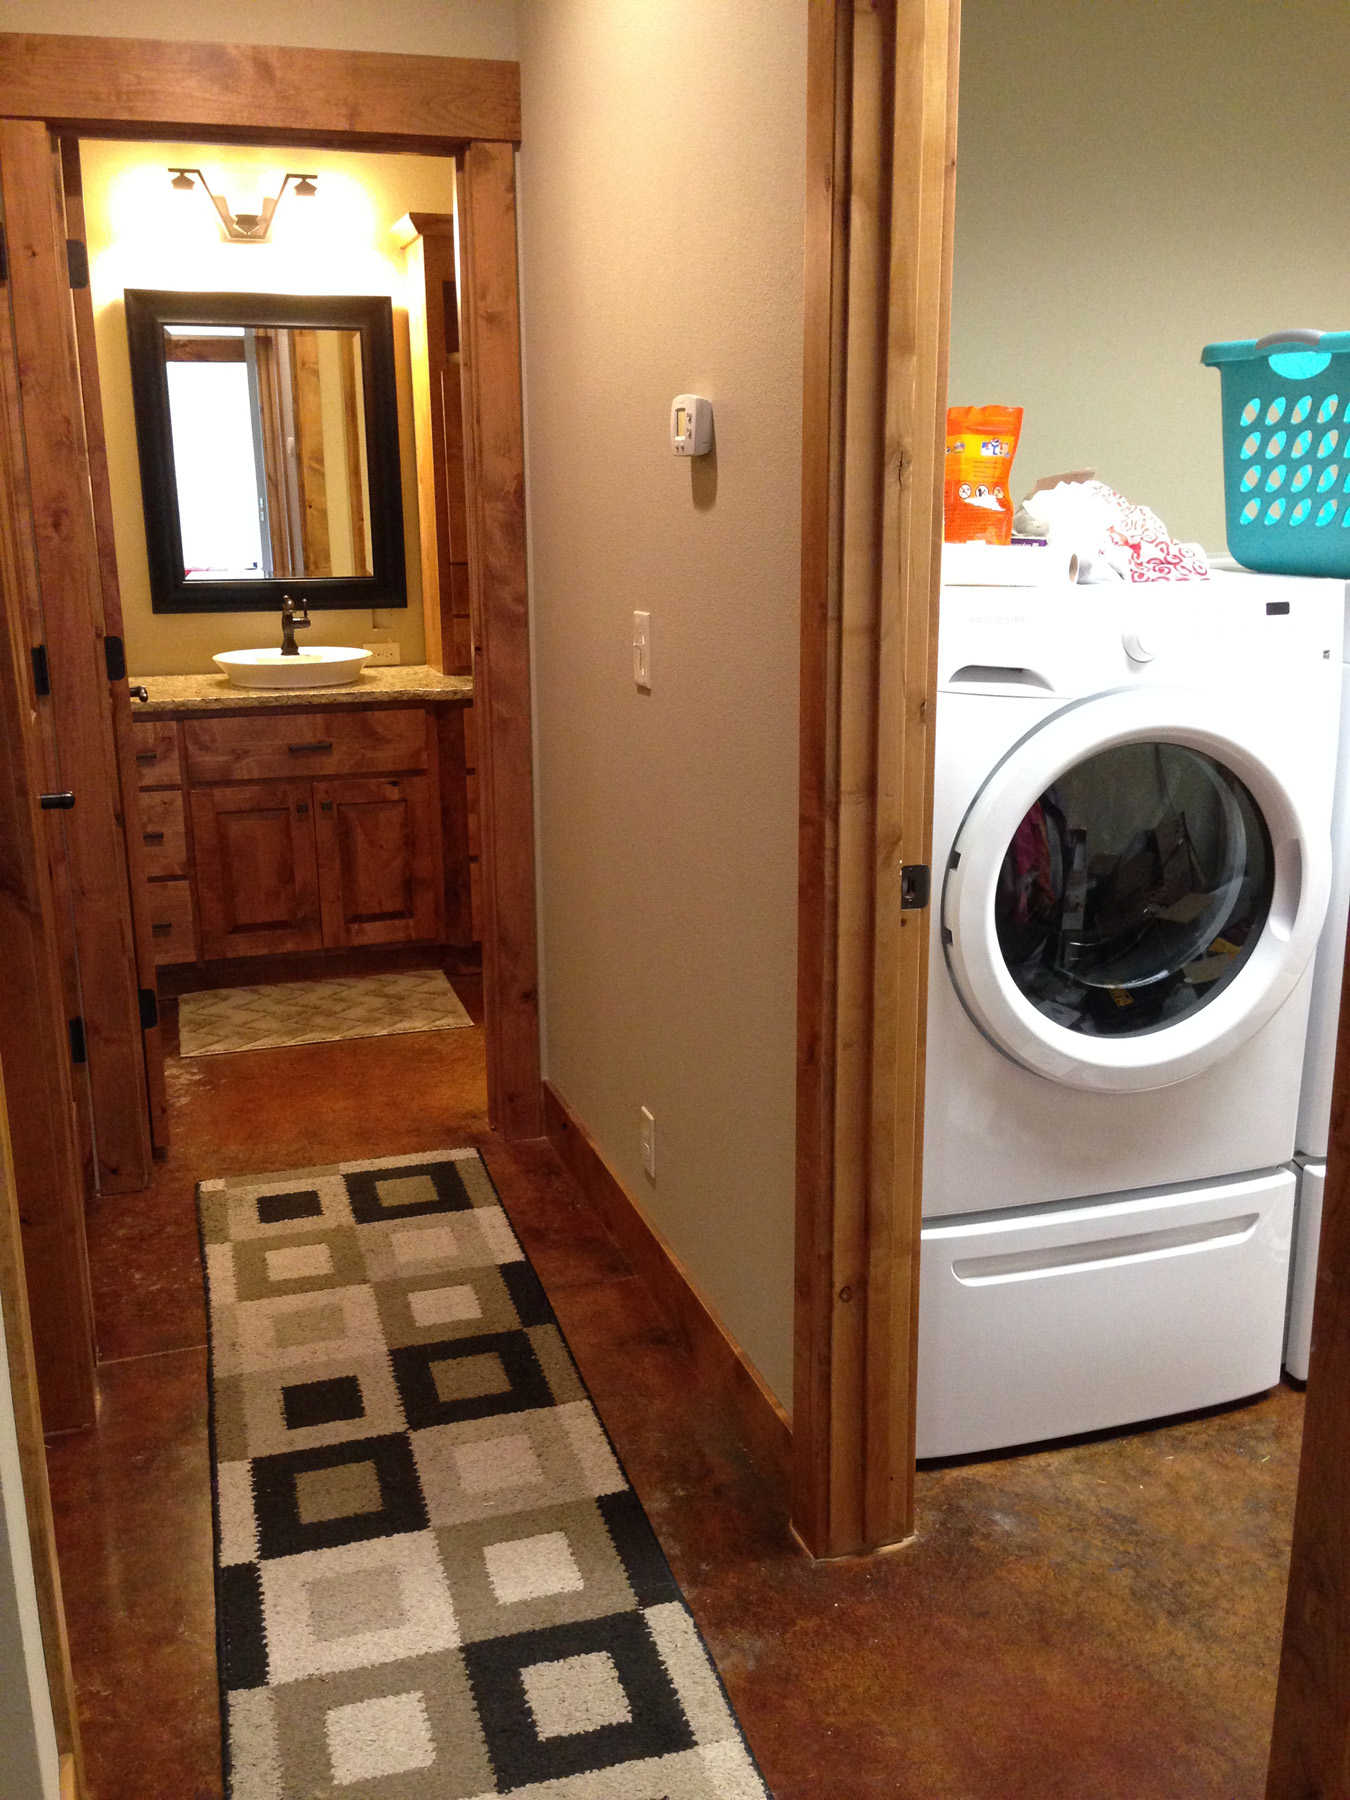 Utility Room - Washer Dryer & Utility Sink